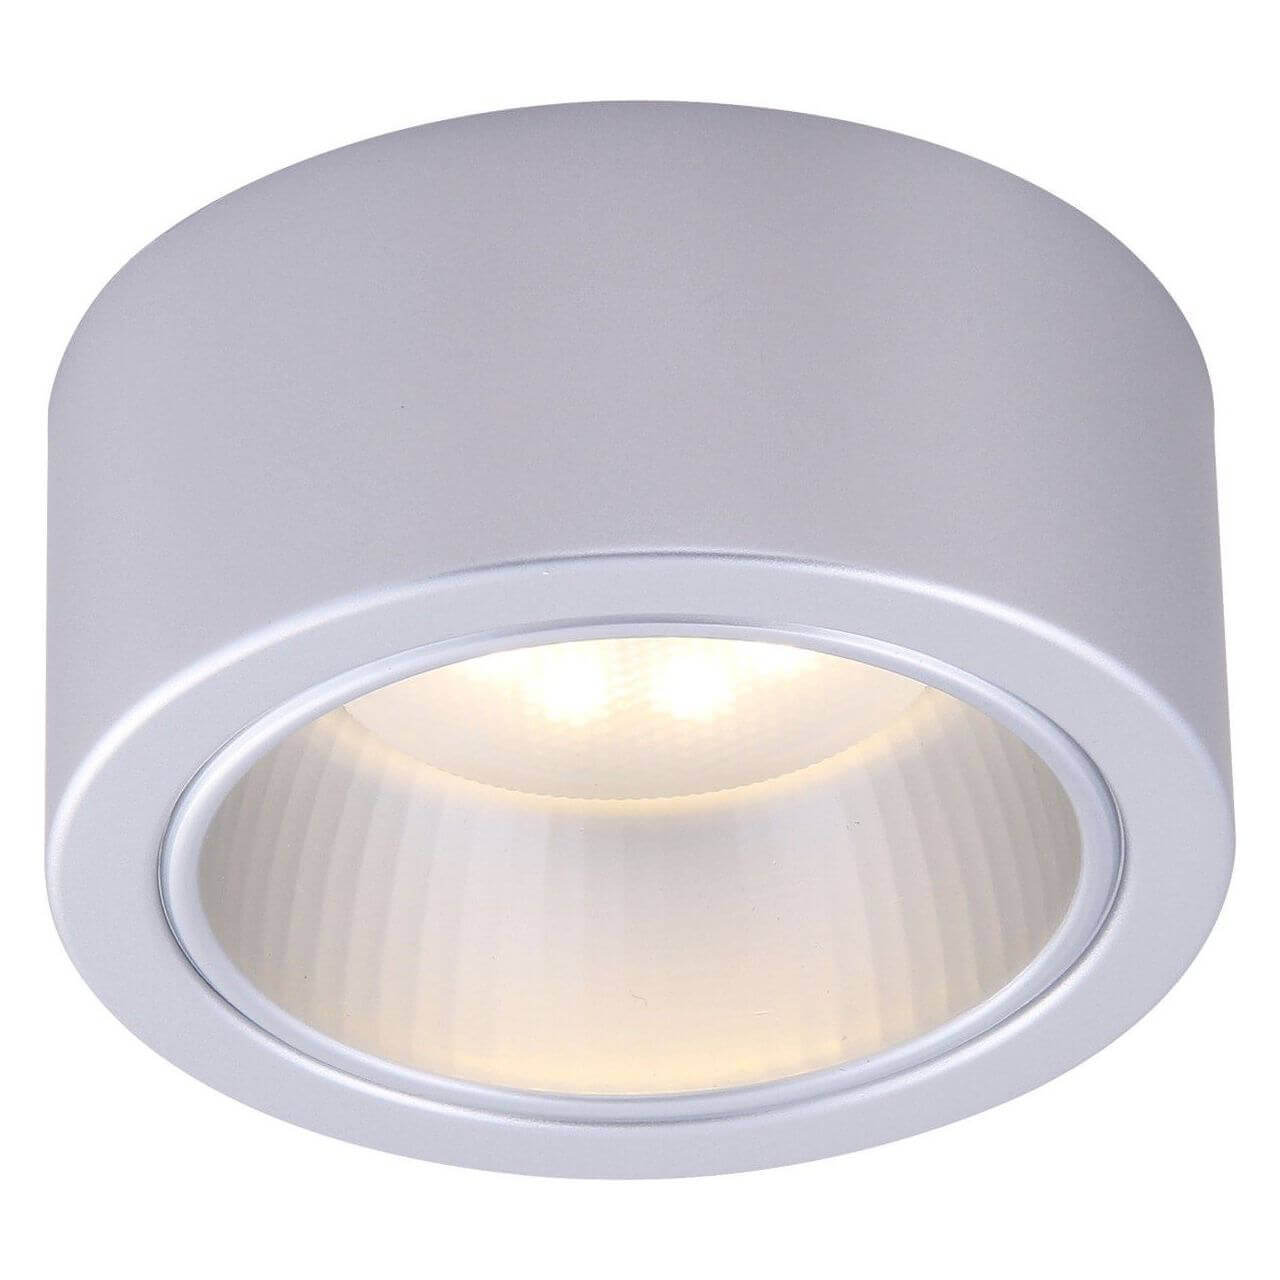 Светильник Arte Lamp A5553PL-1GY Effetto